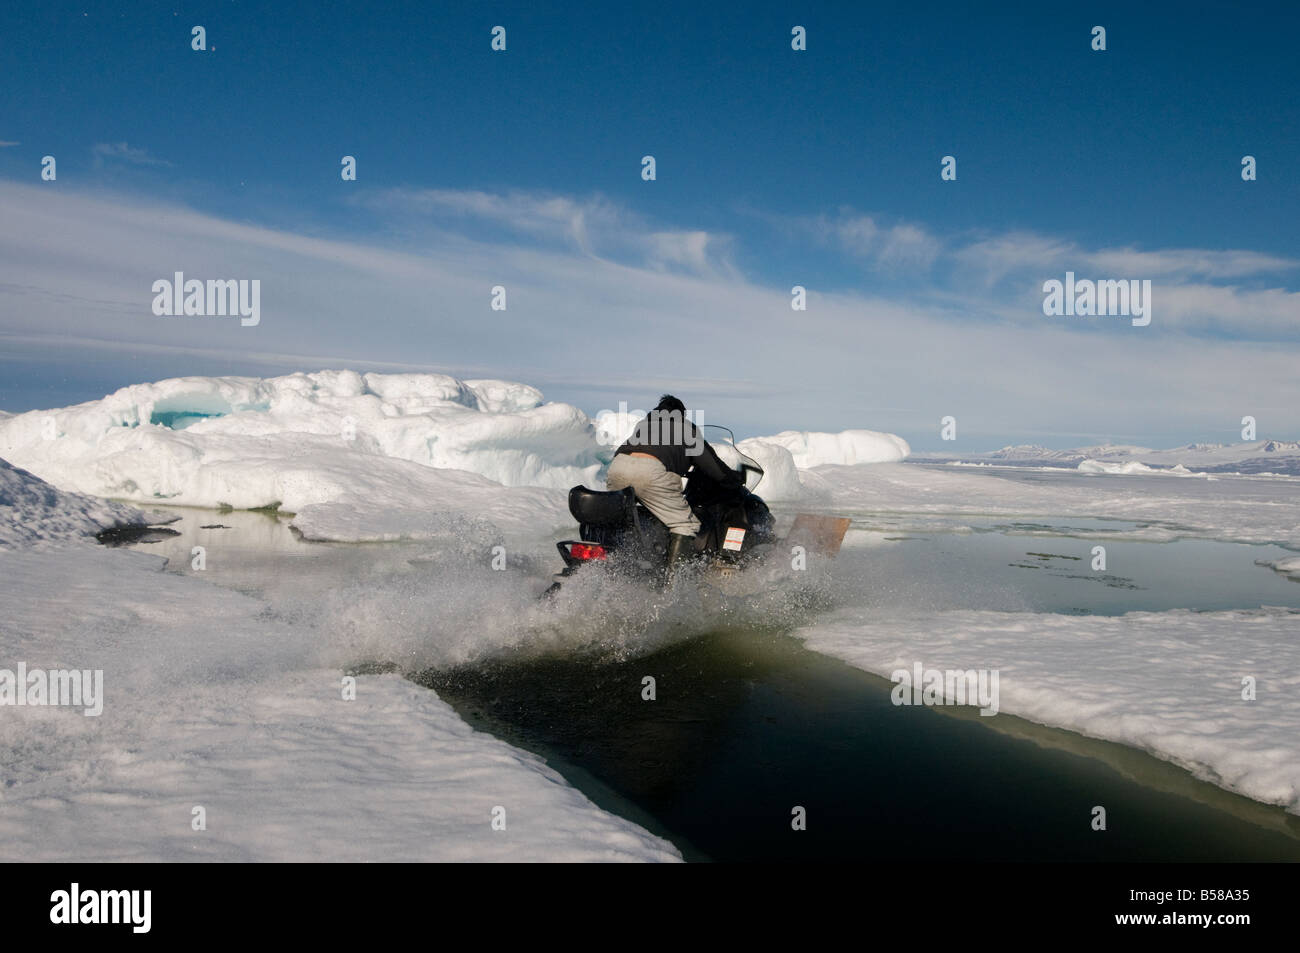 Crossing dangerously wide spring cracks in the ARctic ocean by driving the snowmobile across the surface of the - Stock Image